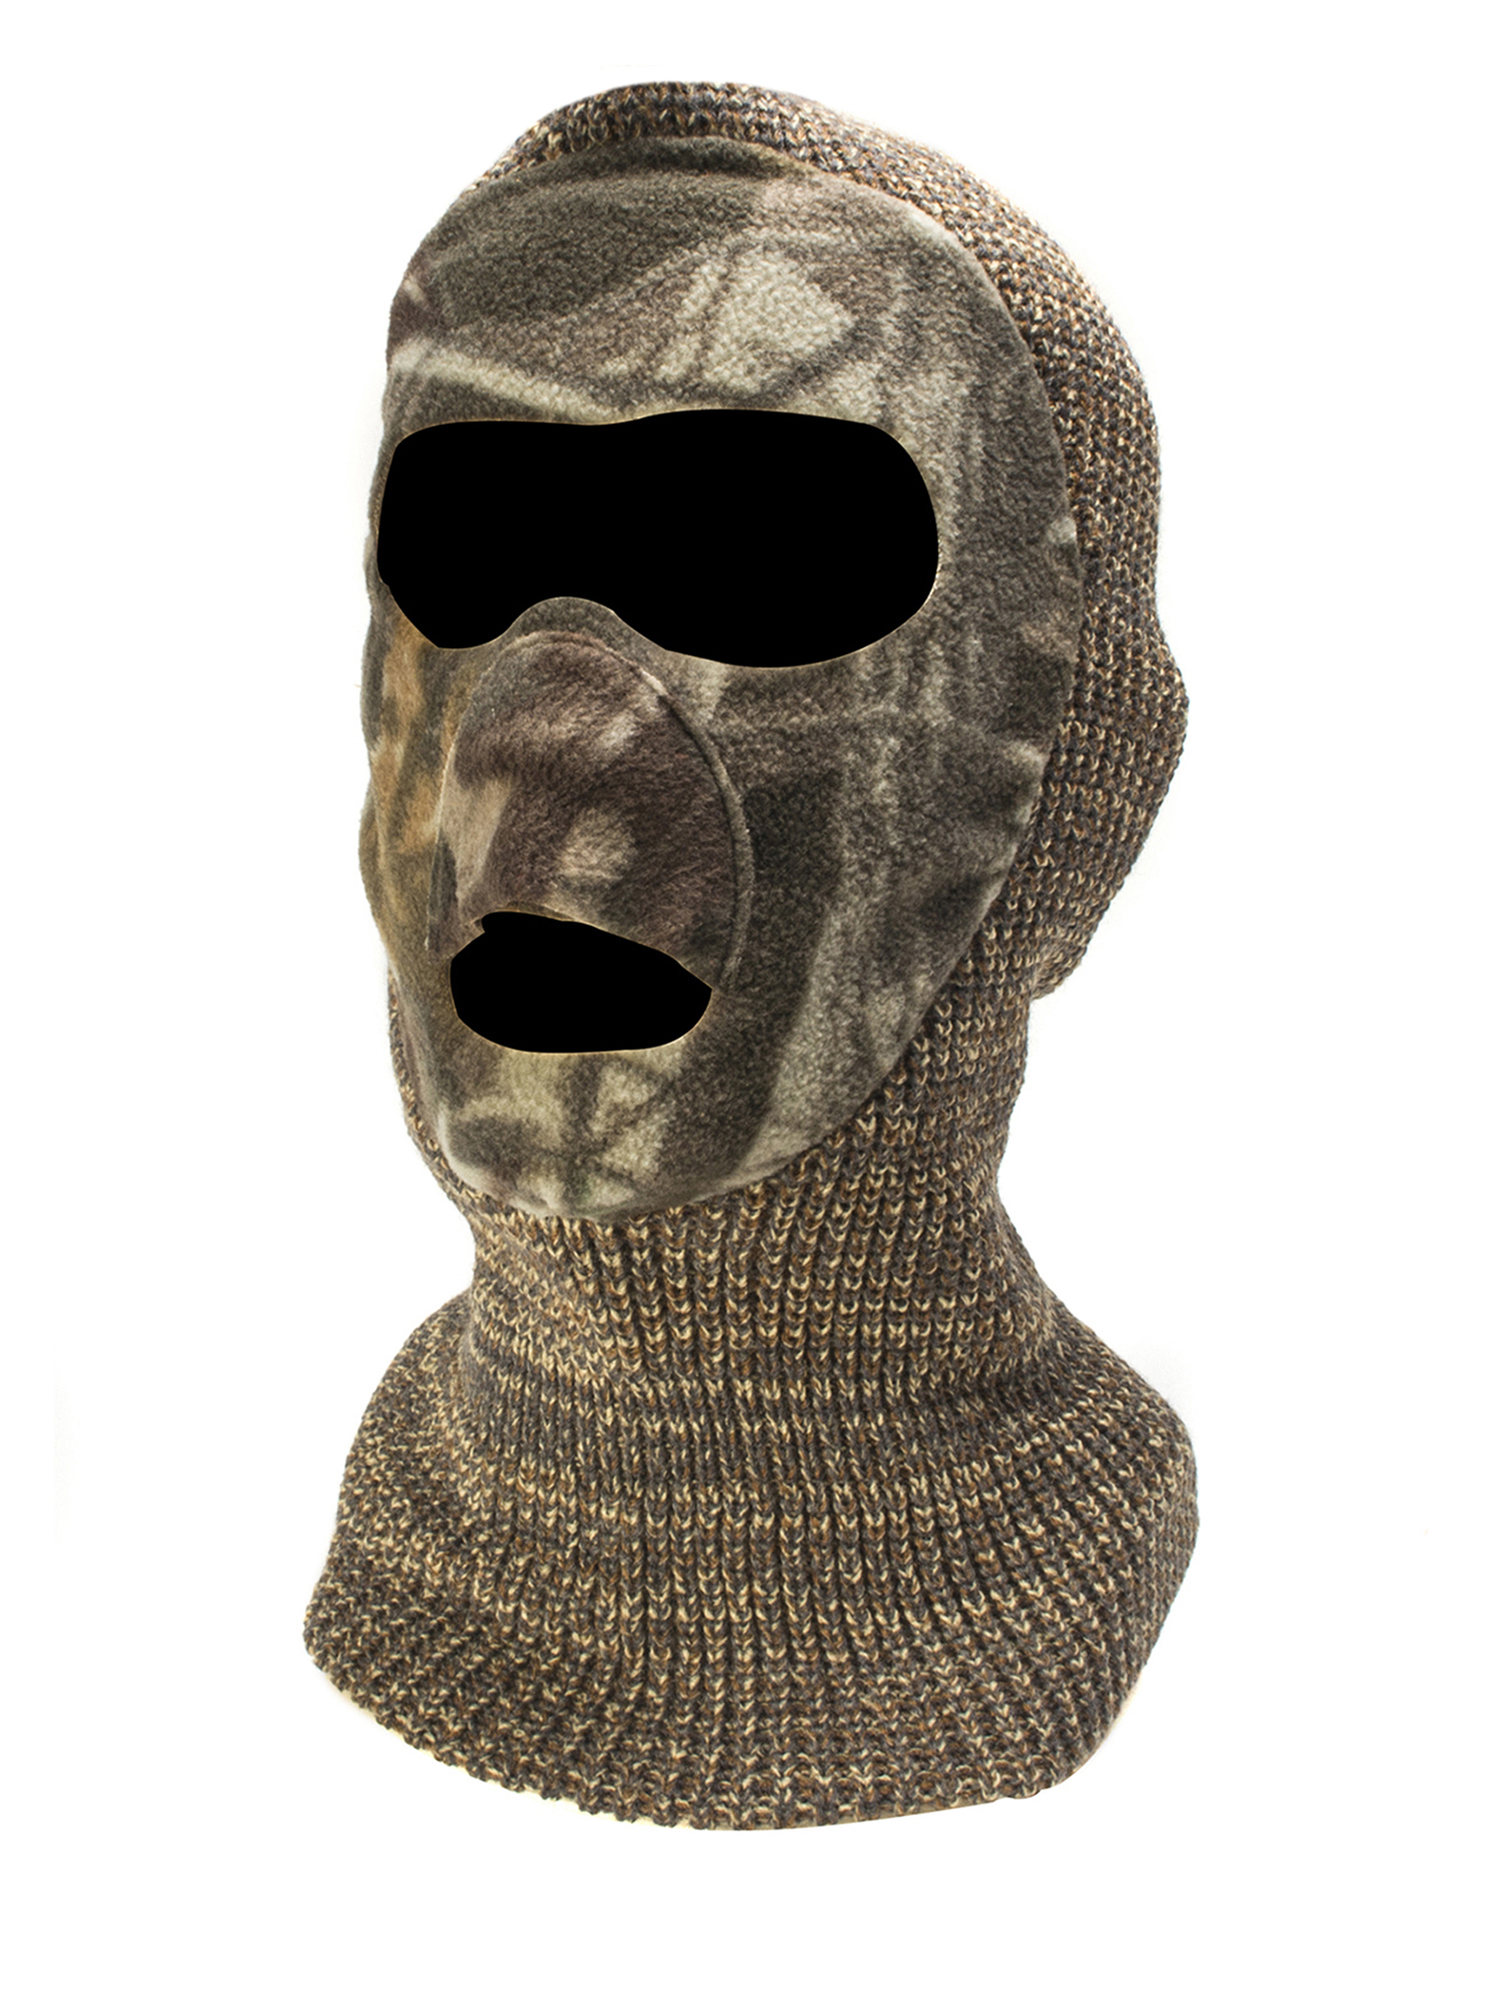 QuietWear Youth Knit and Fleece Patented Mask, Adventure Grey by Reliable Headwear